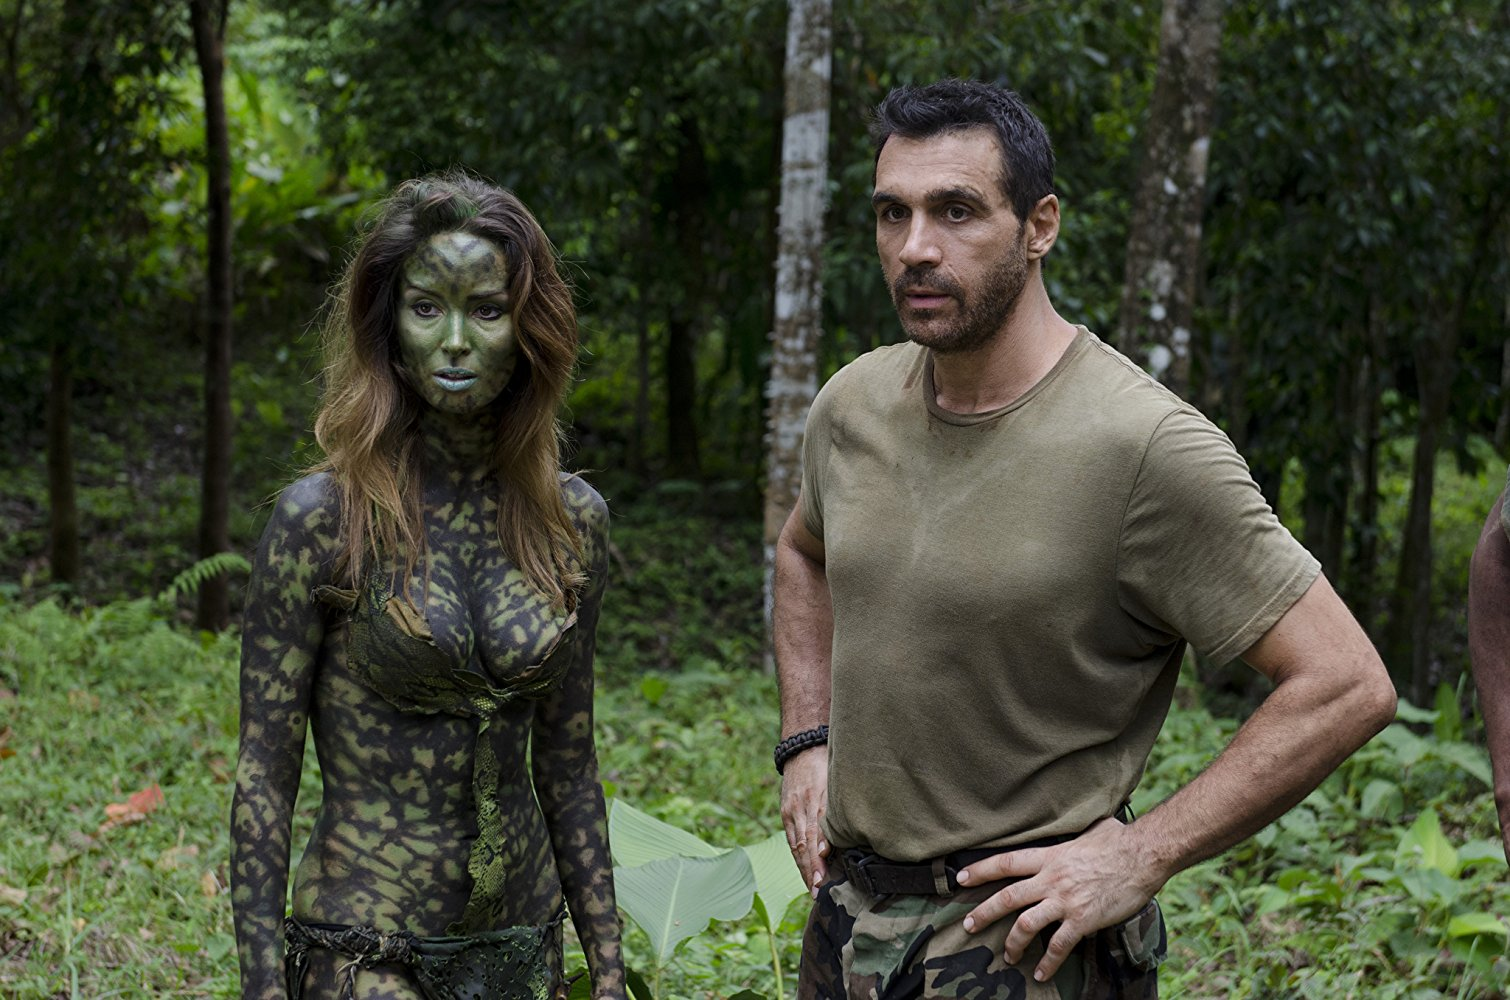 Lieutenant Frank Baum (Adrian Paul) and his alien love interest Lea (Bali Rodriguez) in AE: Apocalypse Earth (2013)